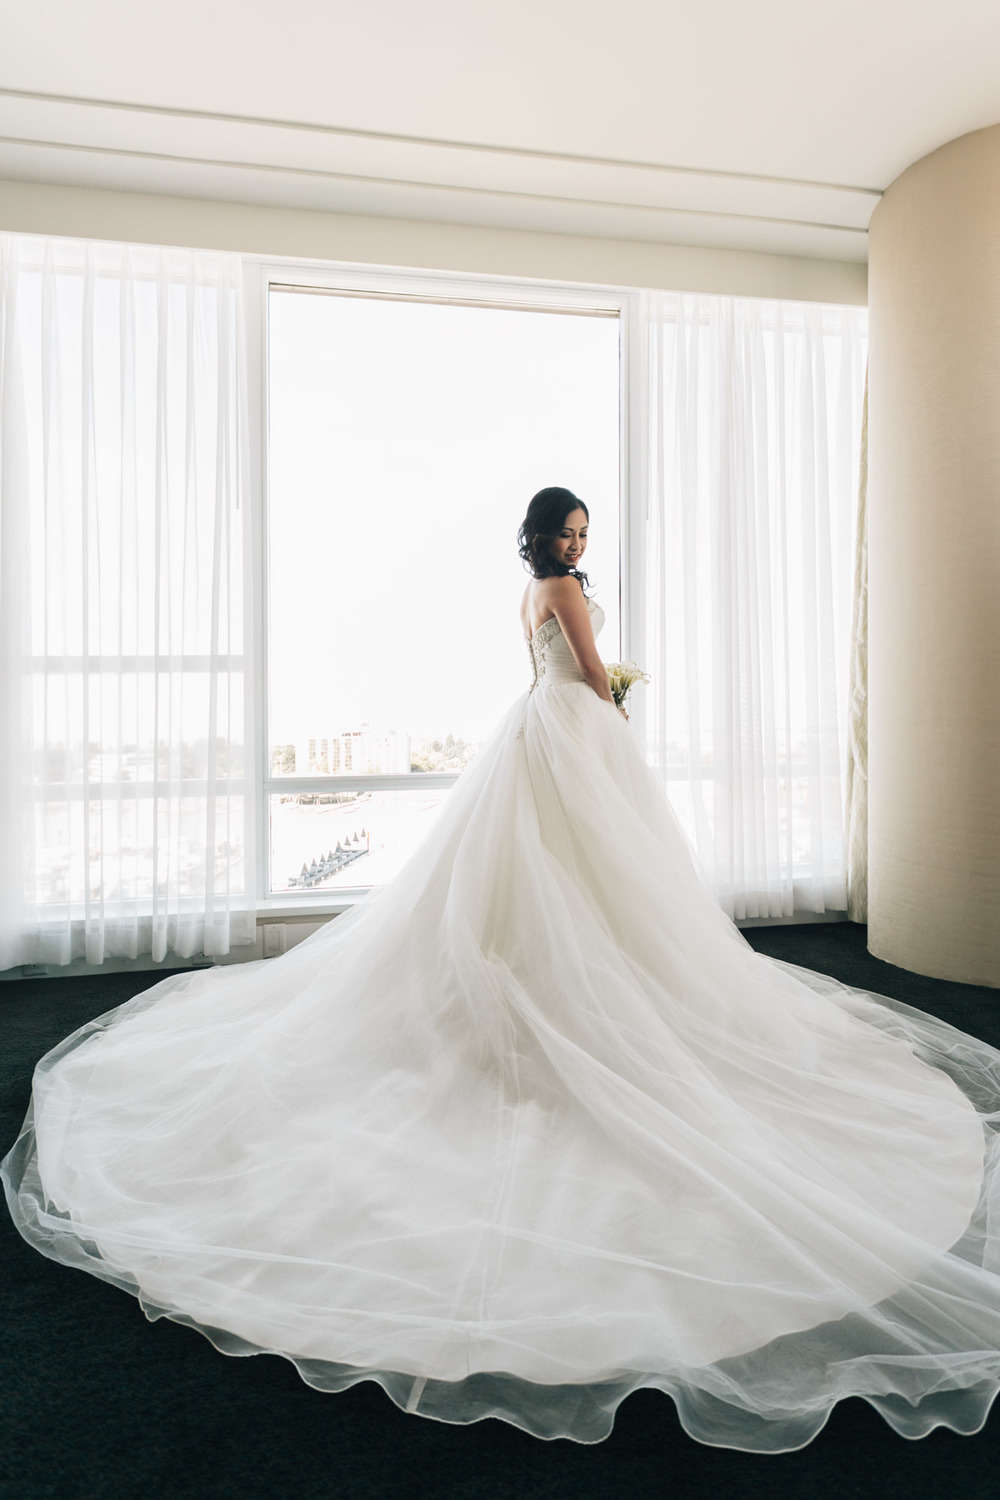 westin wall centre richmond wedding photographers vancouver airport yvr